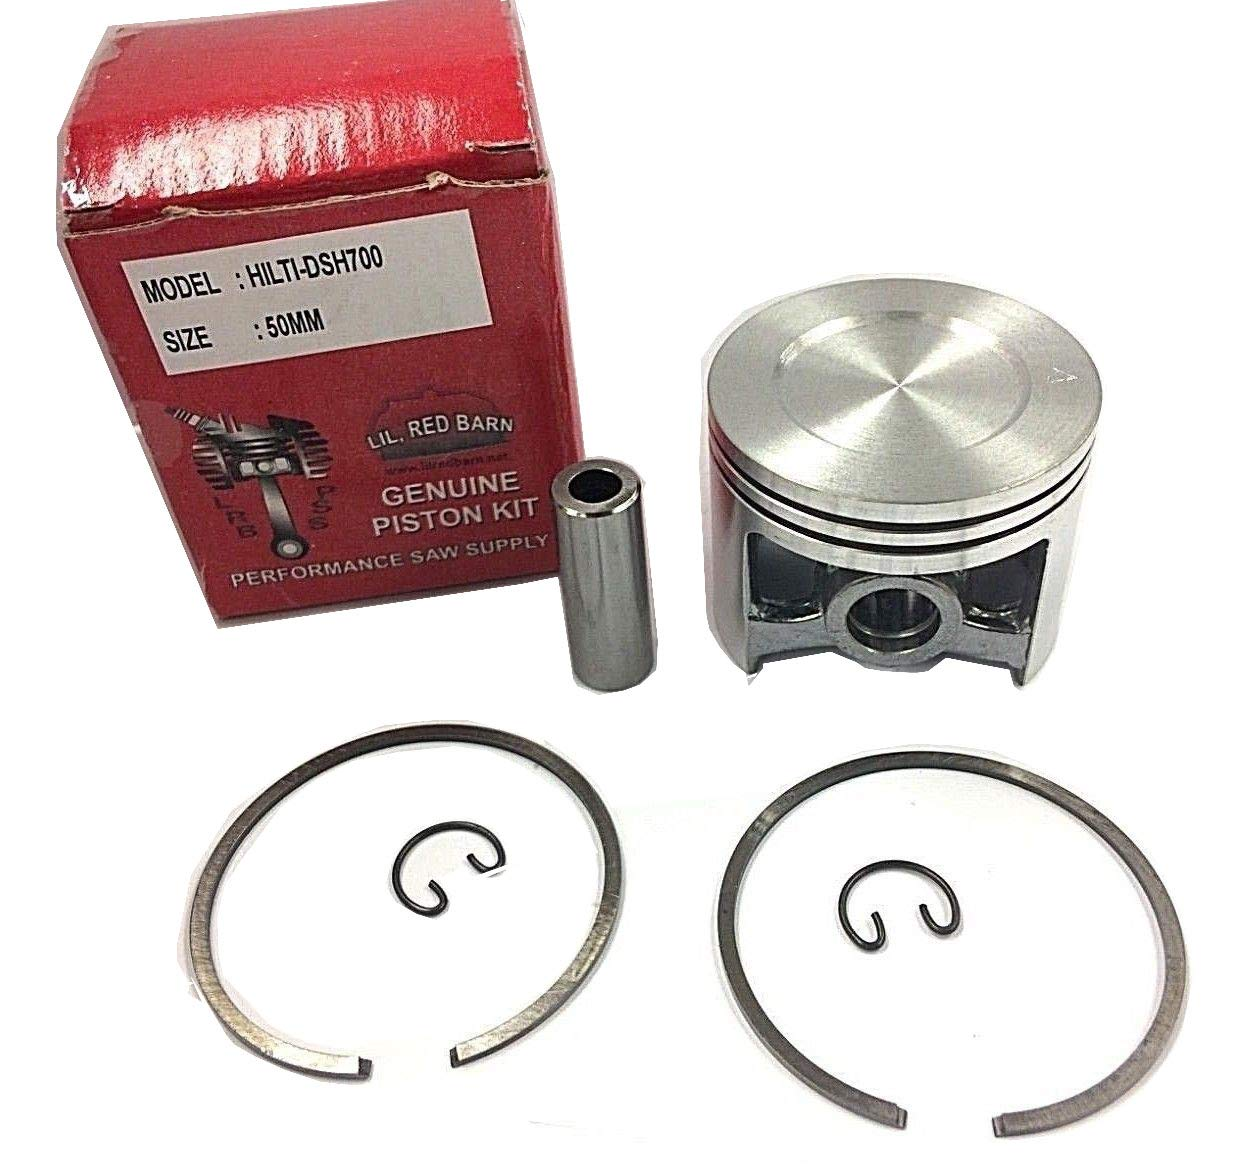 Hilti DCS 700,DSH 700X Concrete Cut Off Saw Piston, 50MM Kit, Replaces Hilti Part # 412238 2 DAY STANDARD SHIPPING TO ALL 50 STATES!